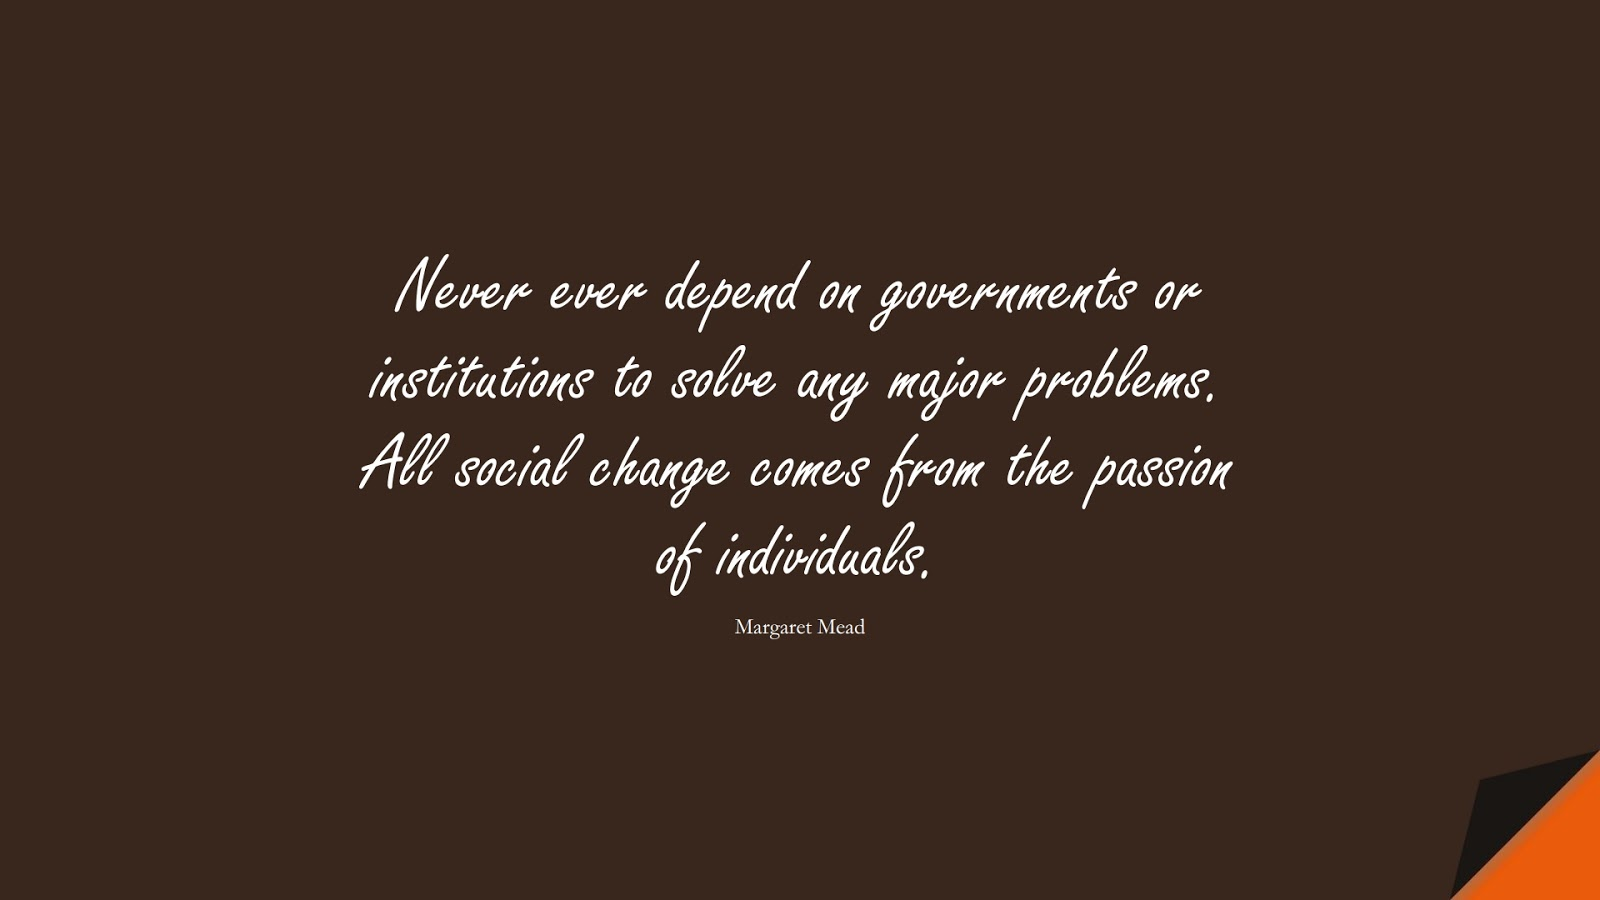 Never ever depend on governments or institutions to solve any major problems. All social change comes from the passion of individuals. (Margaret Mead);  #ChangeQuotes